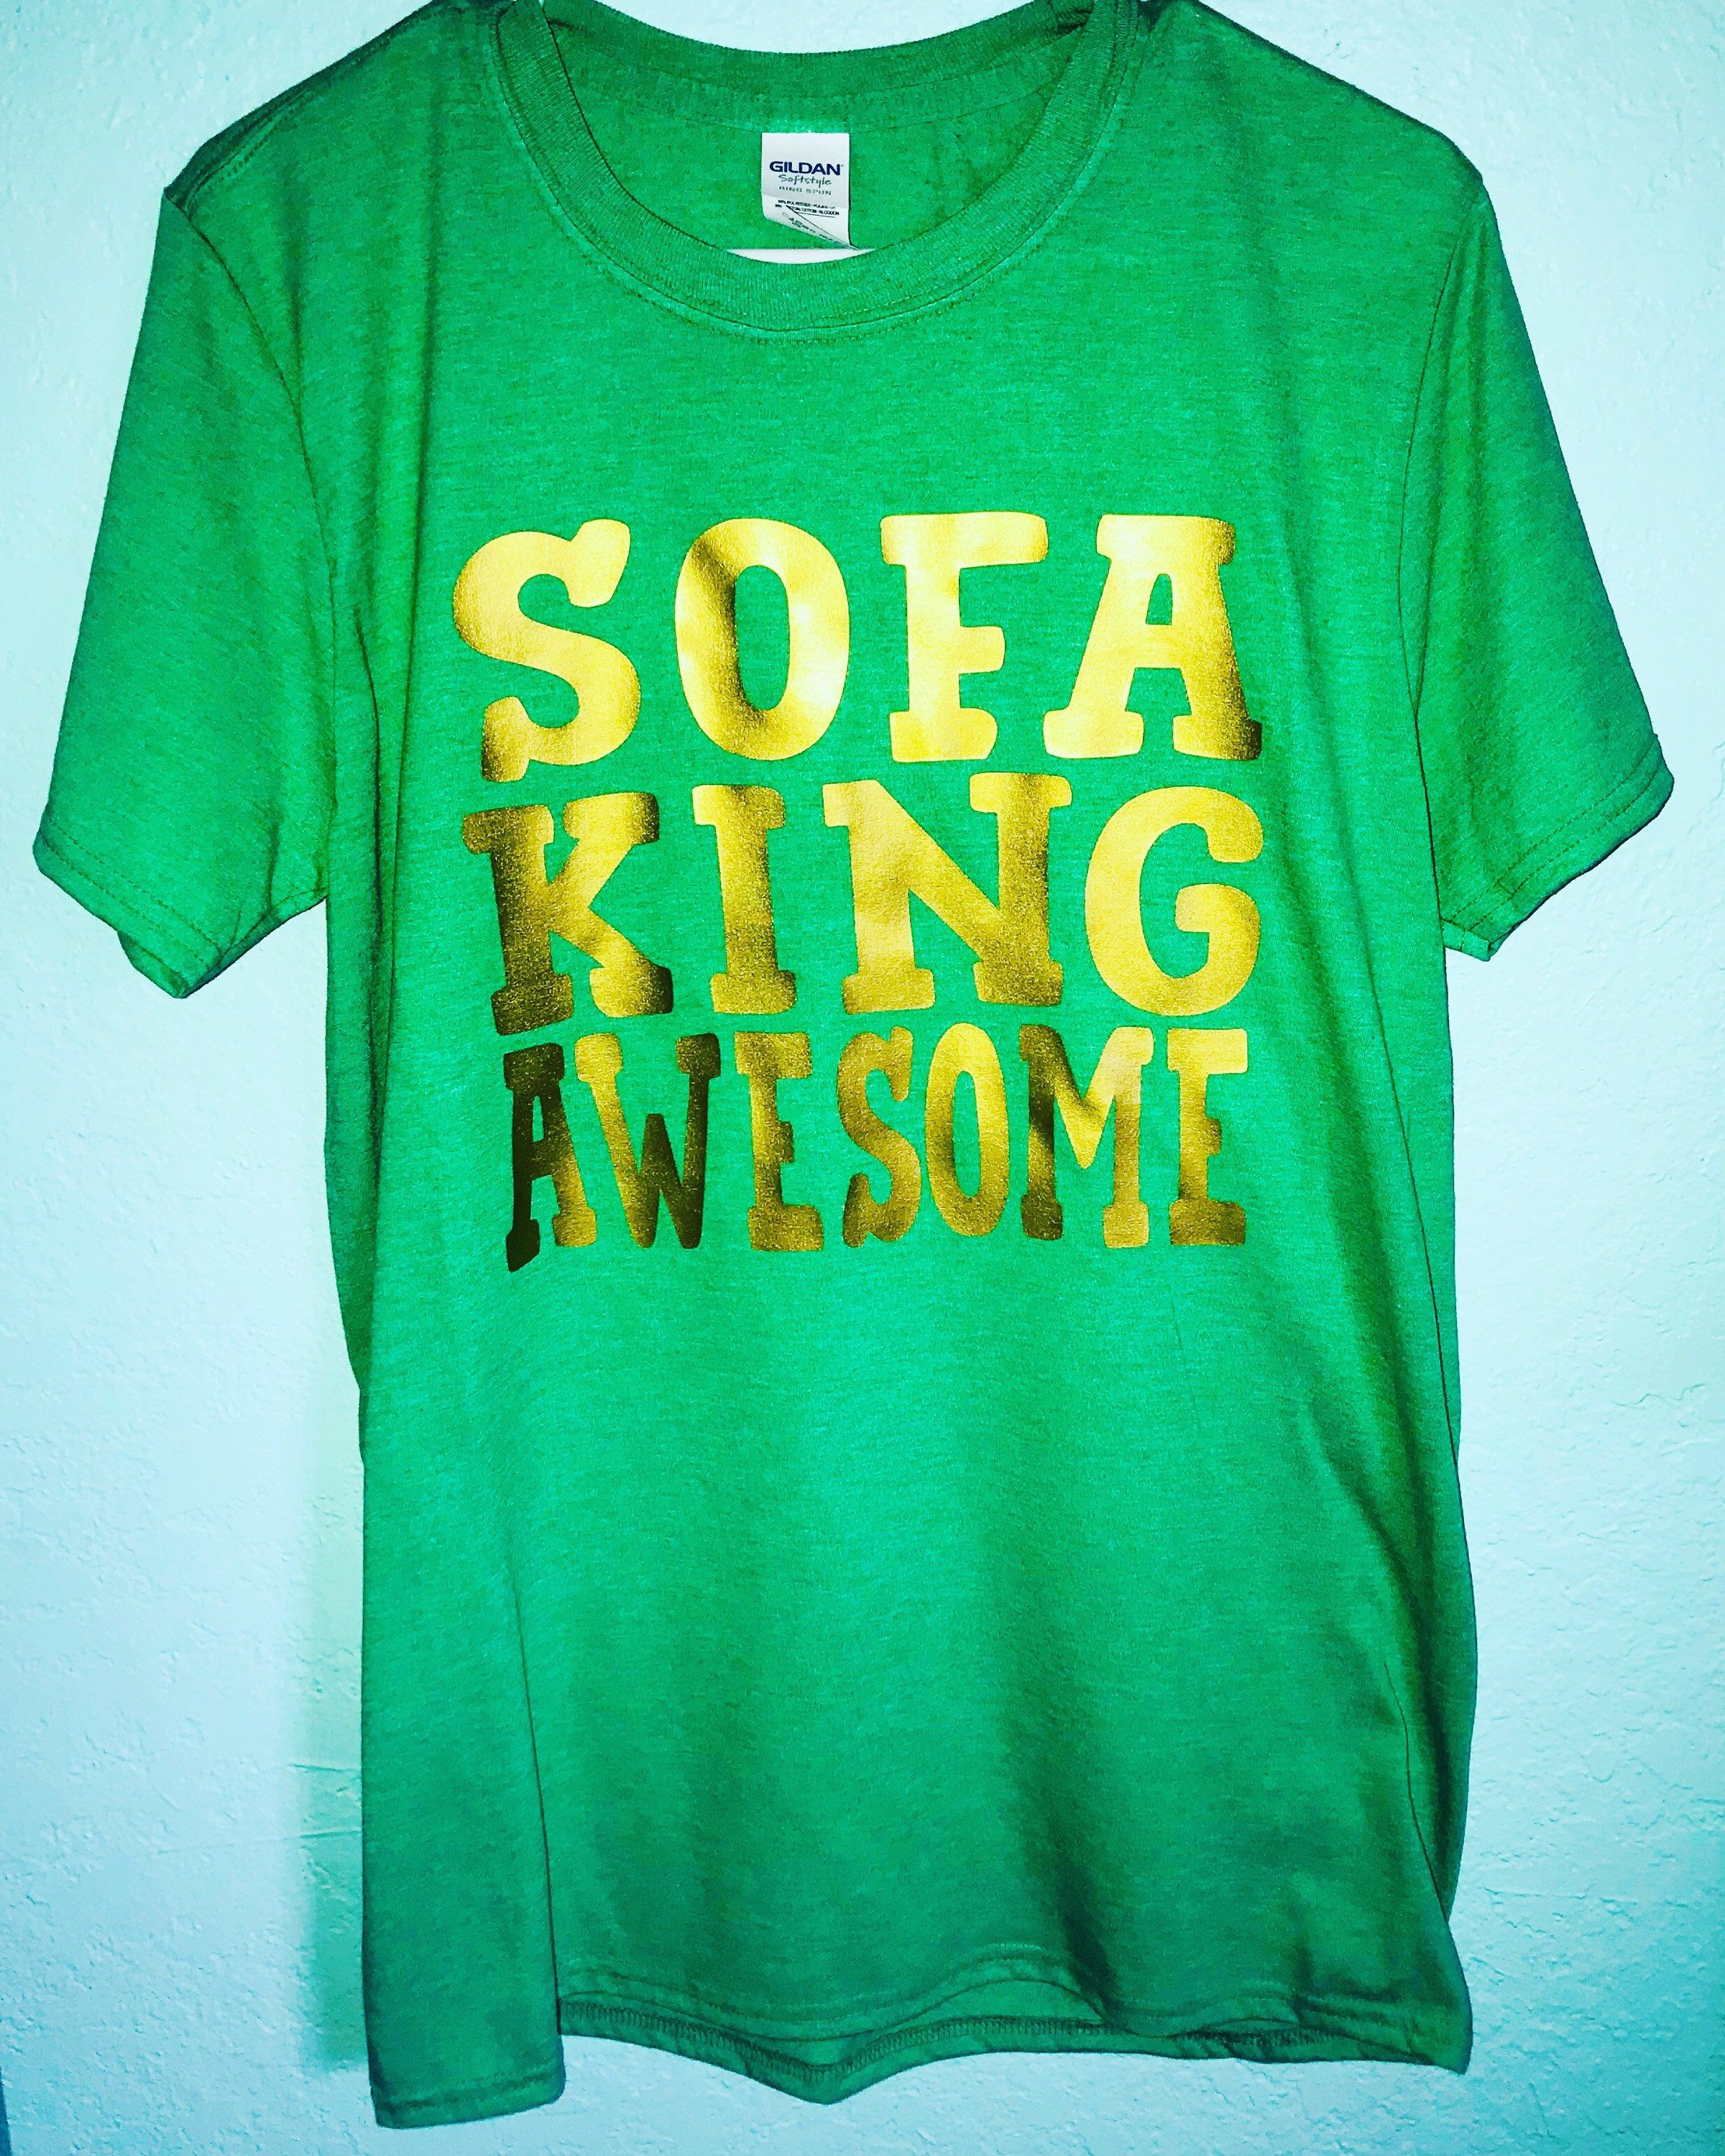 Sofa King Awesome T Shirt Best Leather Companies Men S Bromance Funny Australian For Razor Blades Valentine Day Gift